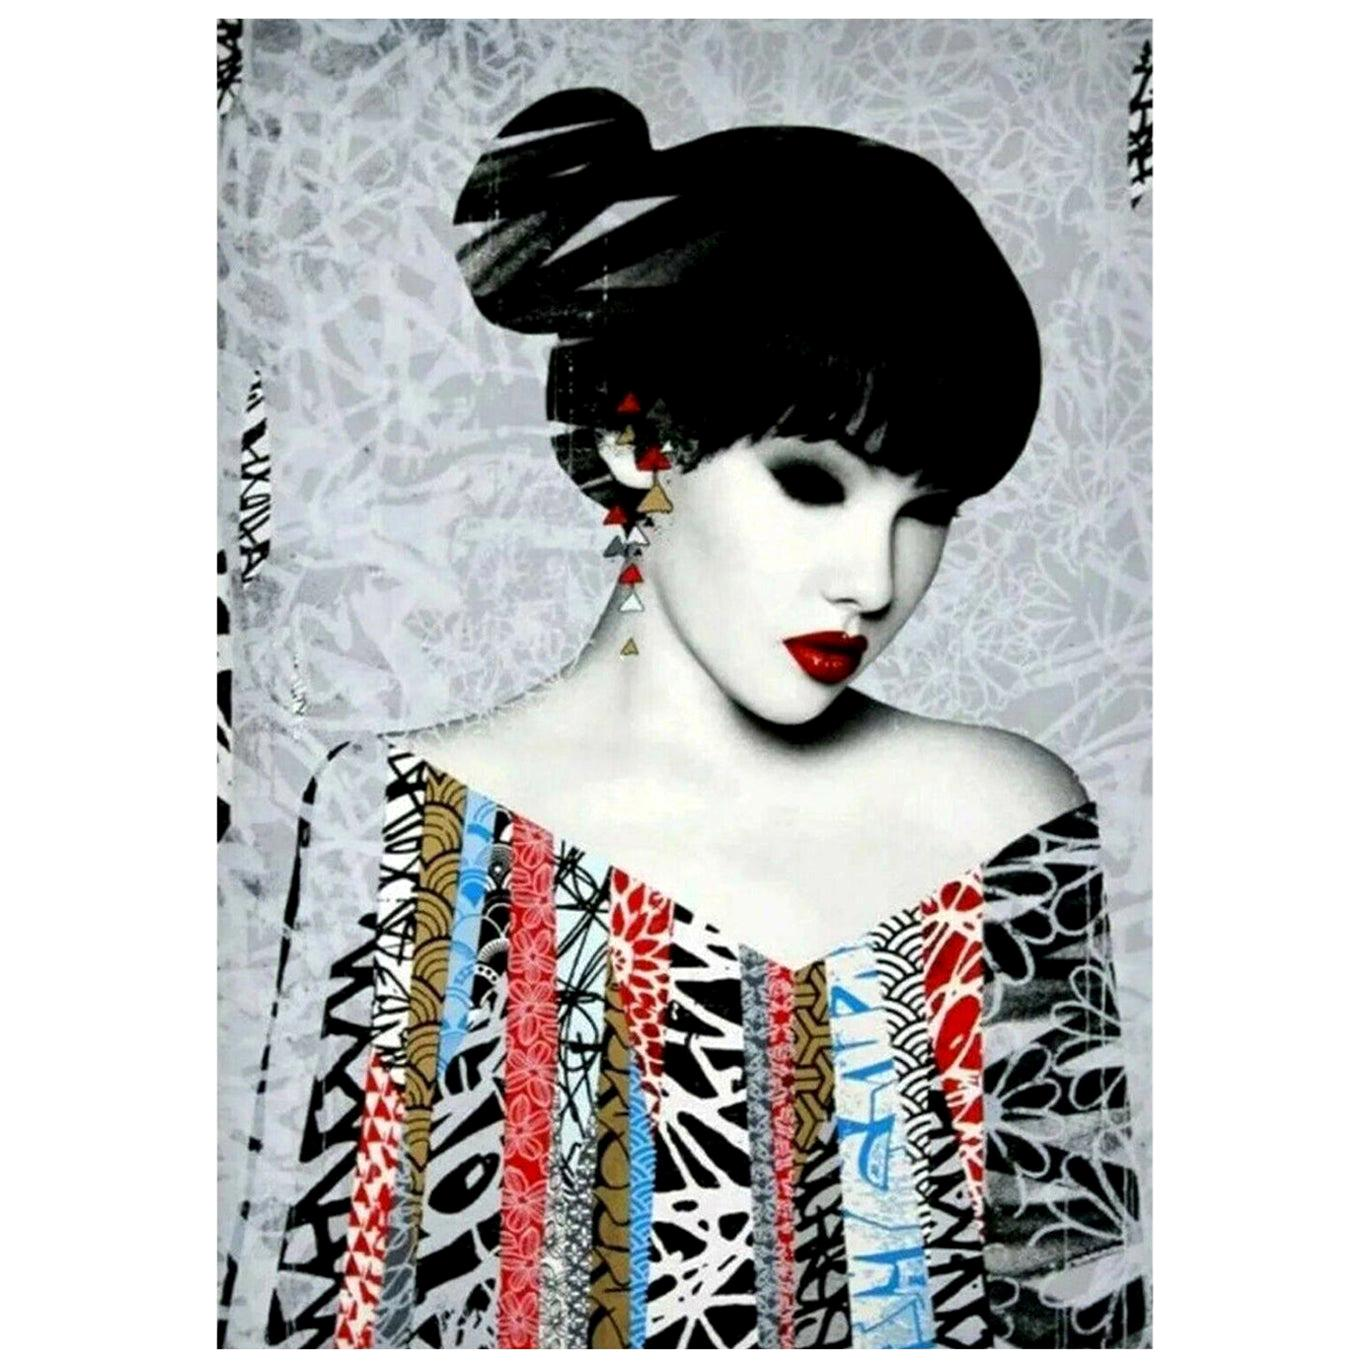 HUSH, Poise, Limited Edition Screen Print